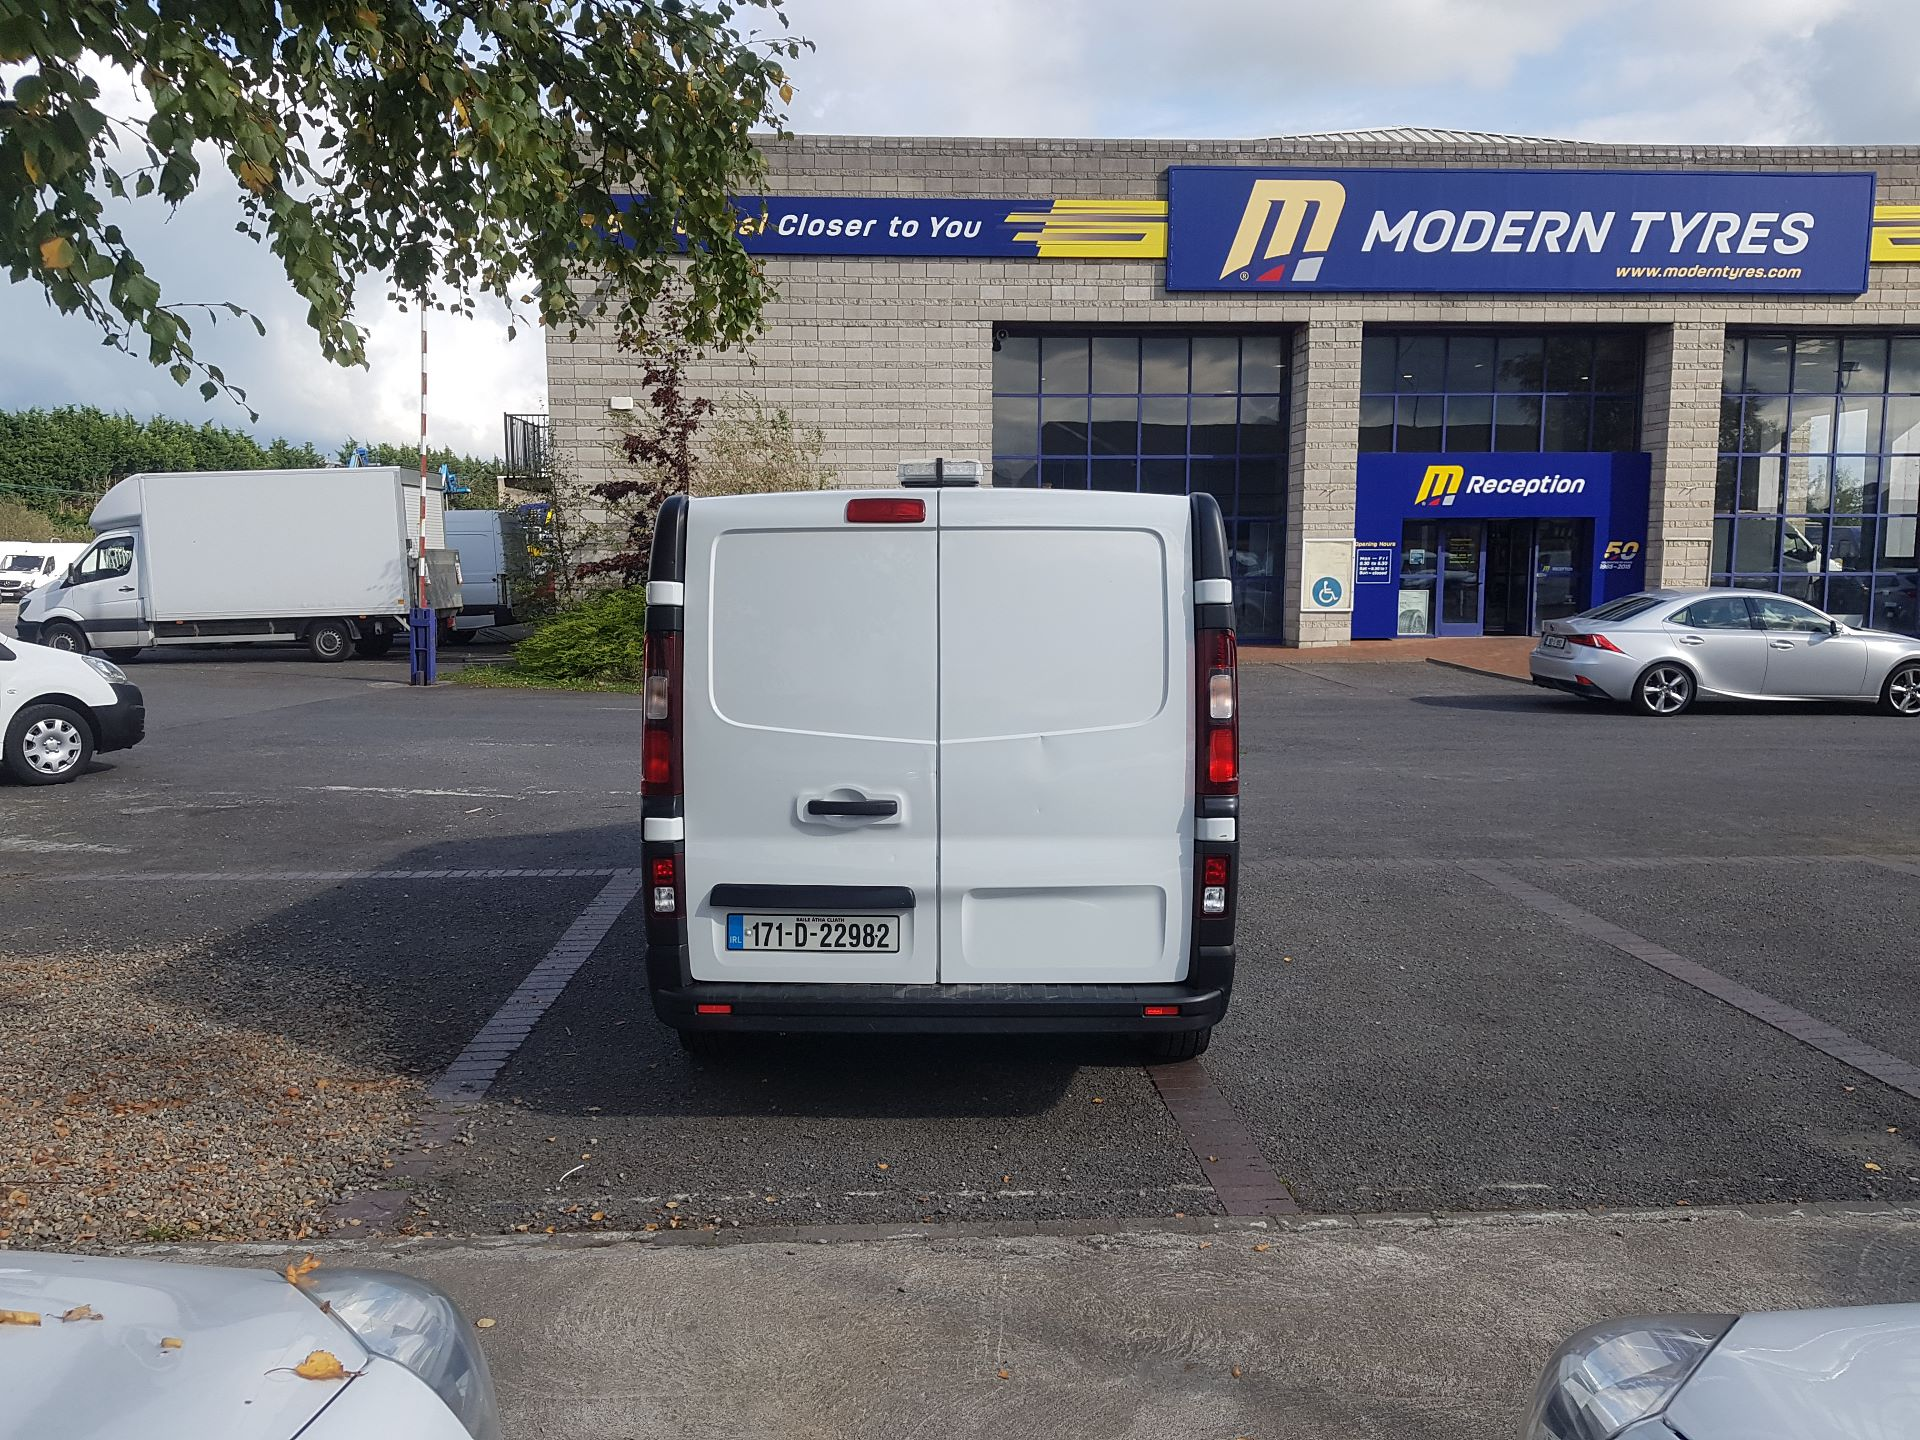 2017 Renault Trafic LL29 DCI 120 Business 3DR (171D22982) Image 3